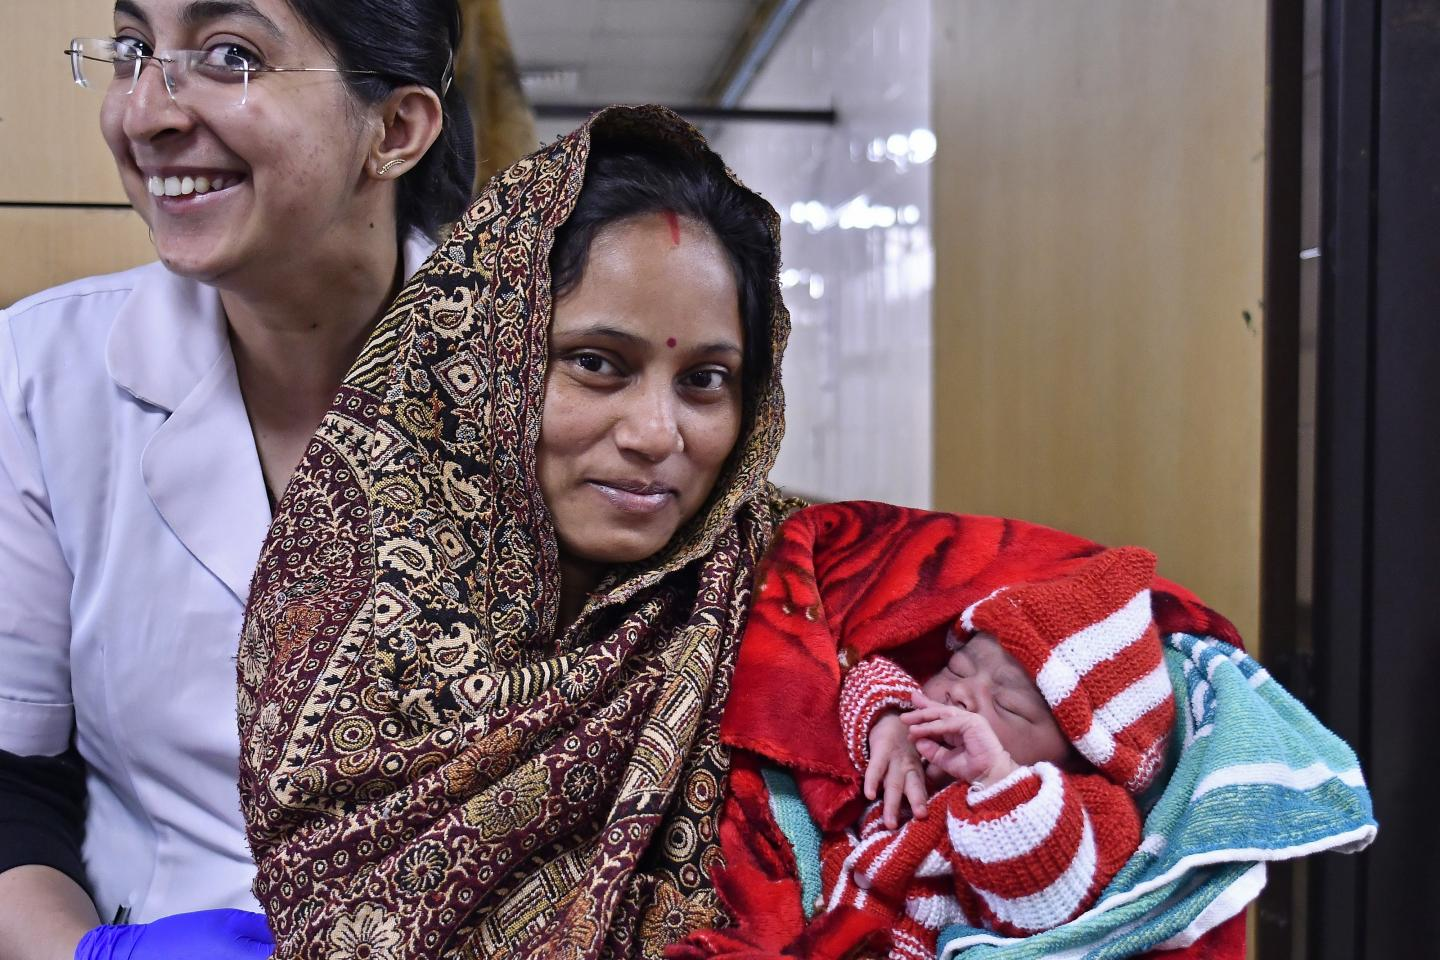 India. A mother holds up her newborn baby girl at Lady Hardinge Medical College in New Delhi.